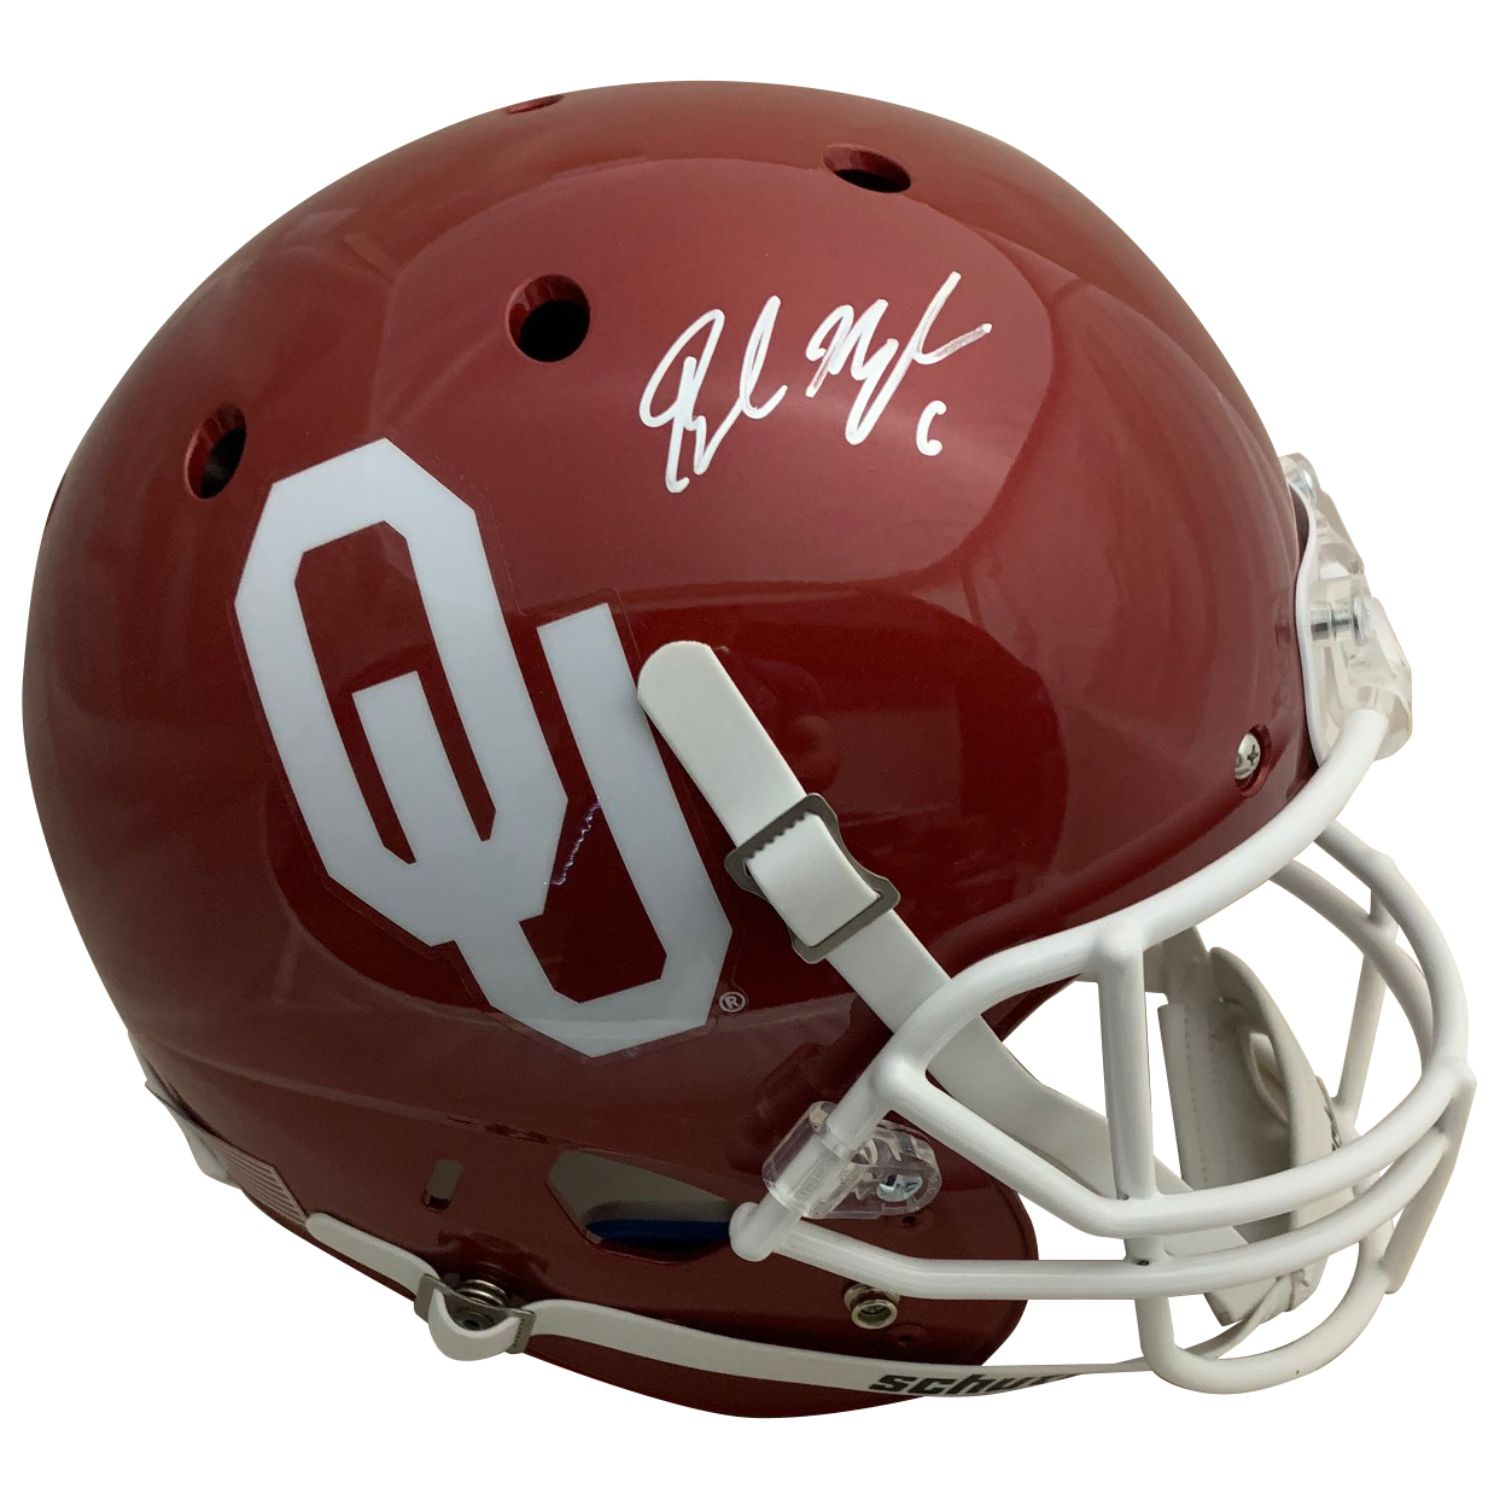 Baker Mayfield Autographed Oklahoma Sooners Signed Football Full Size Helmet PSA DNA COA